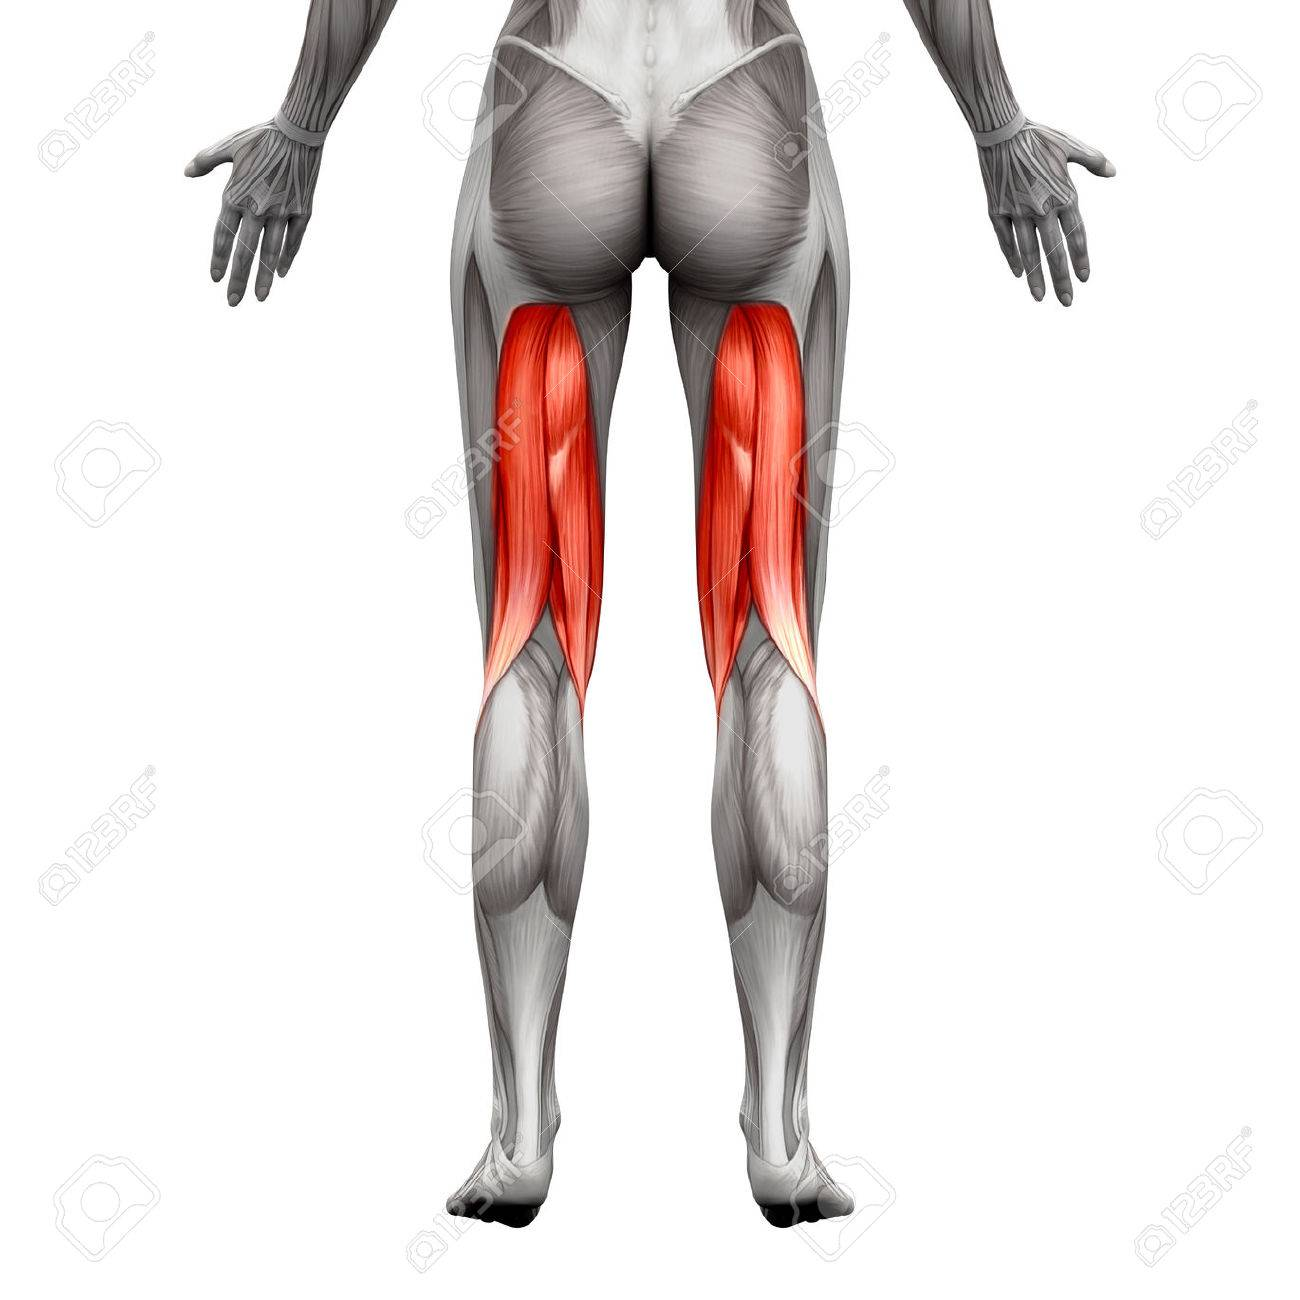 Hamstrings Muscles Anatomy Muscle Isolated On White 3d